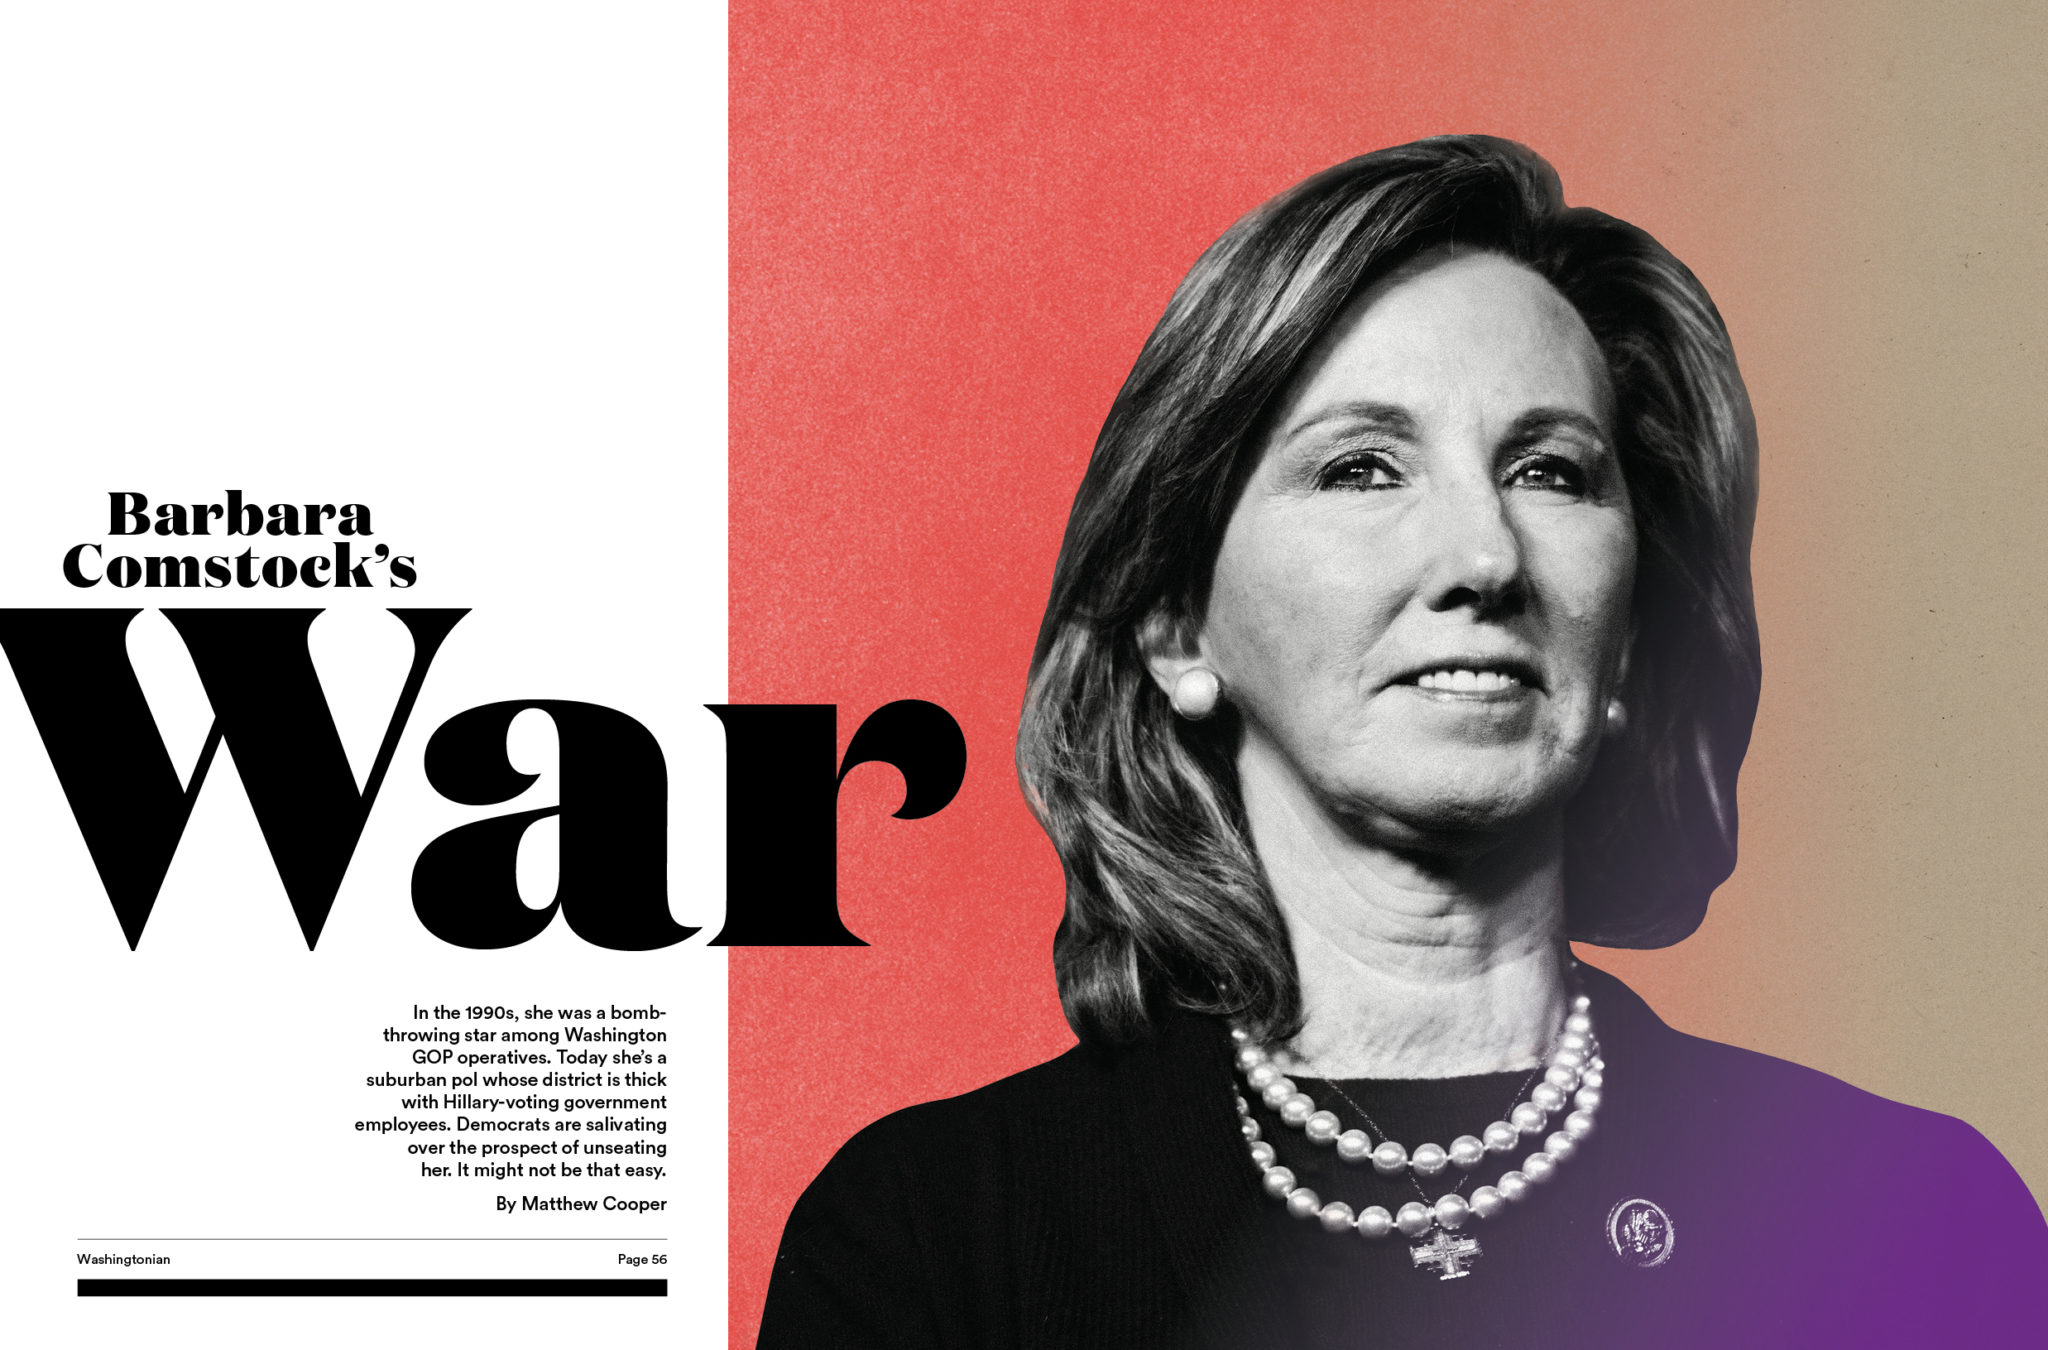 Democrats Are Salivating About Beating Barbara Comstock This Fall. It Might Not Be That Easy.